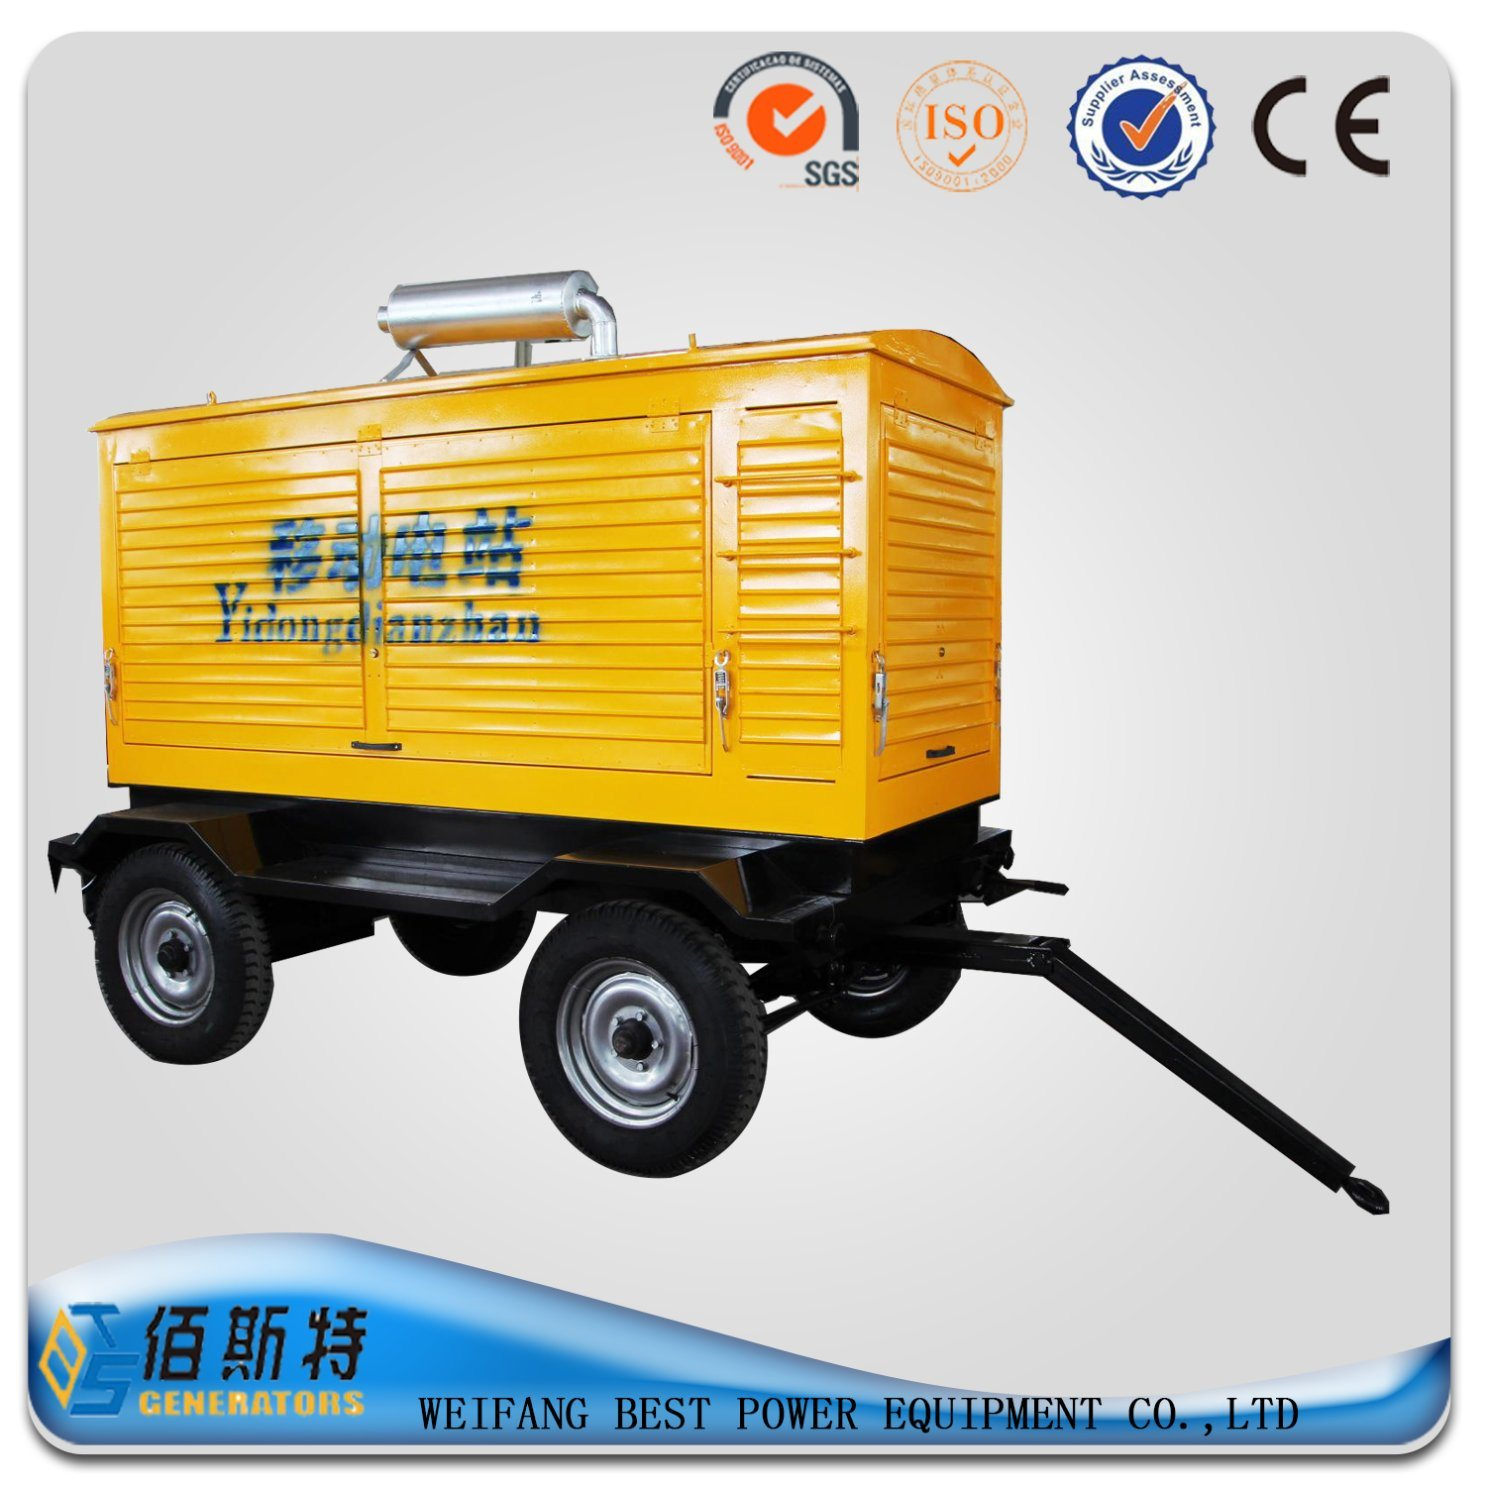 China 30kw Industrial Portable Diesel Generator with Trailer and